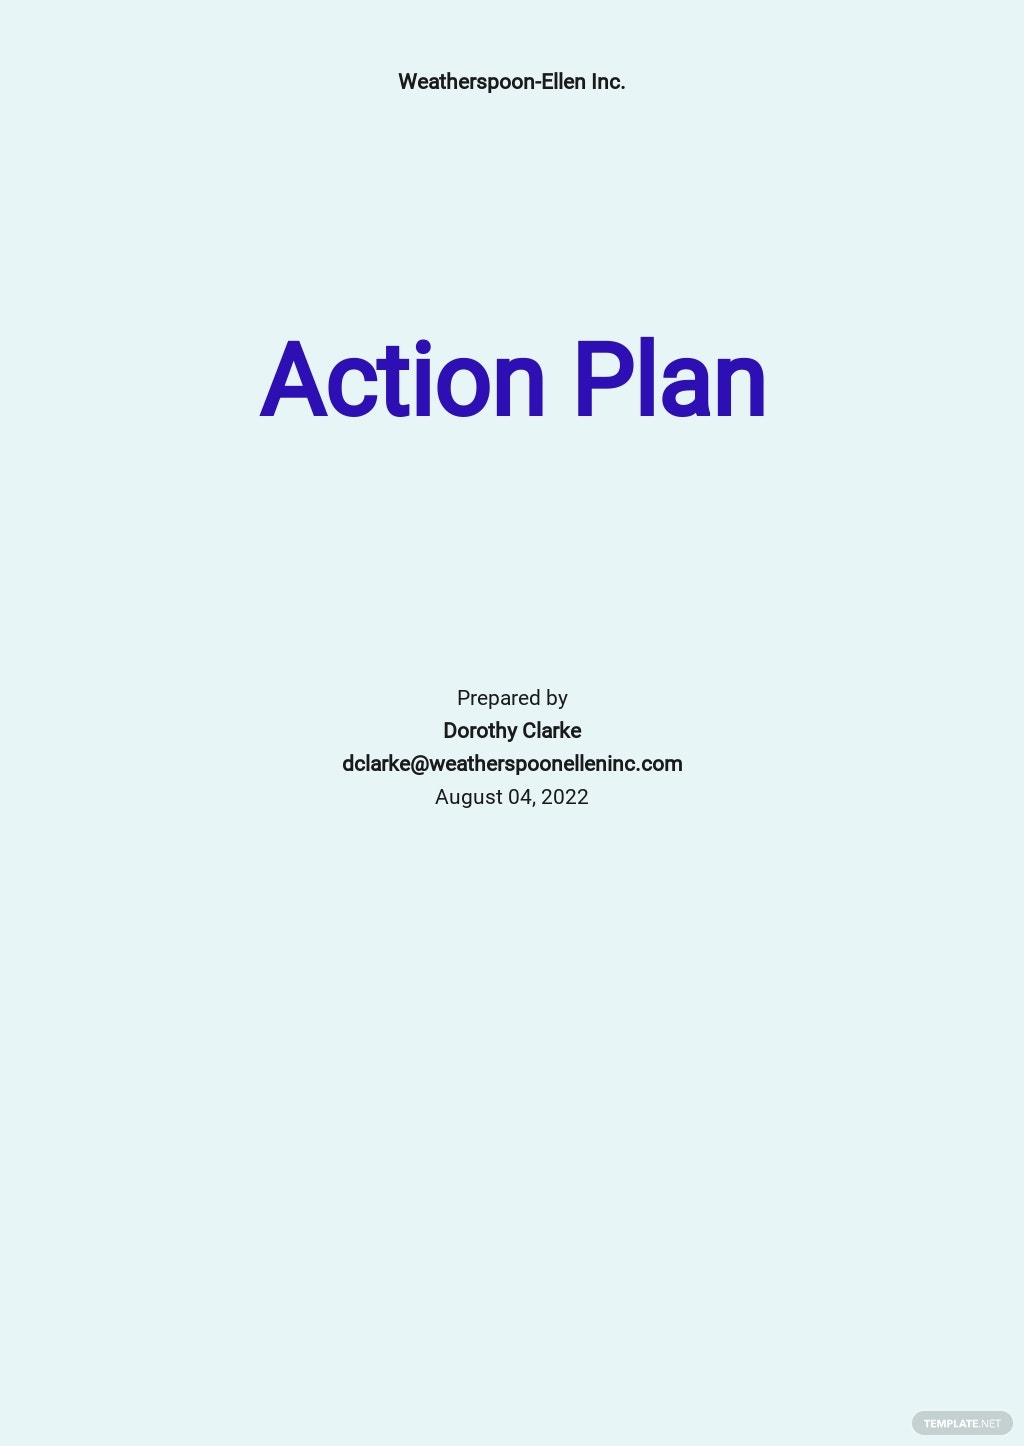 Daily Sales Action Plan Template